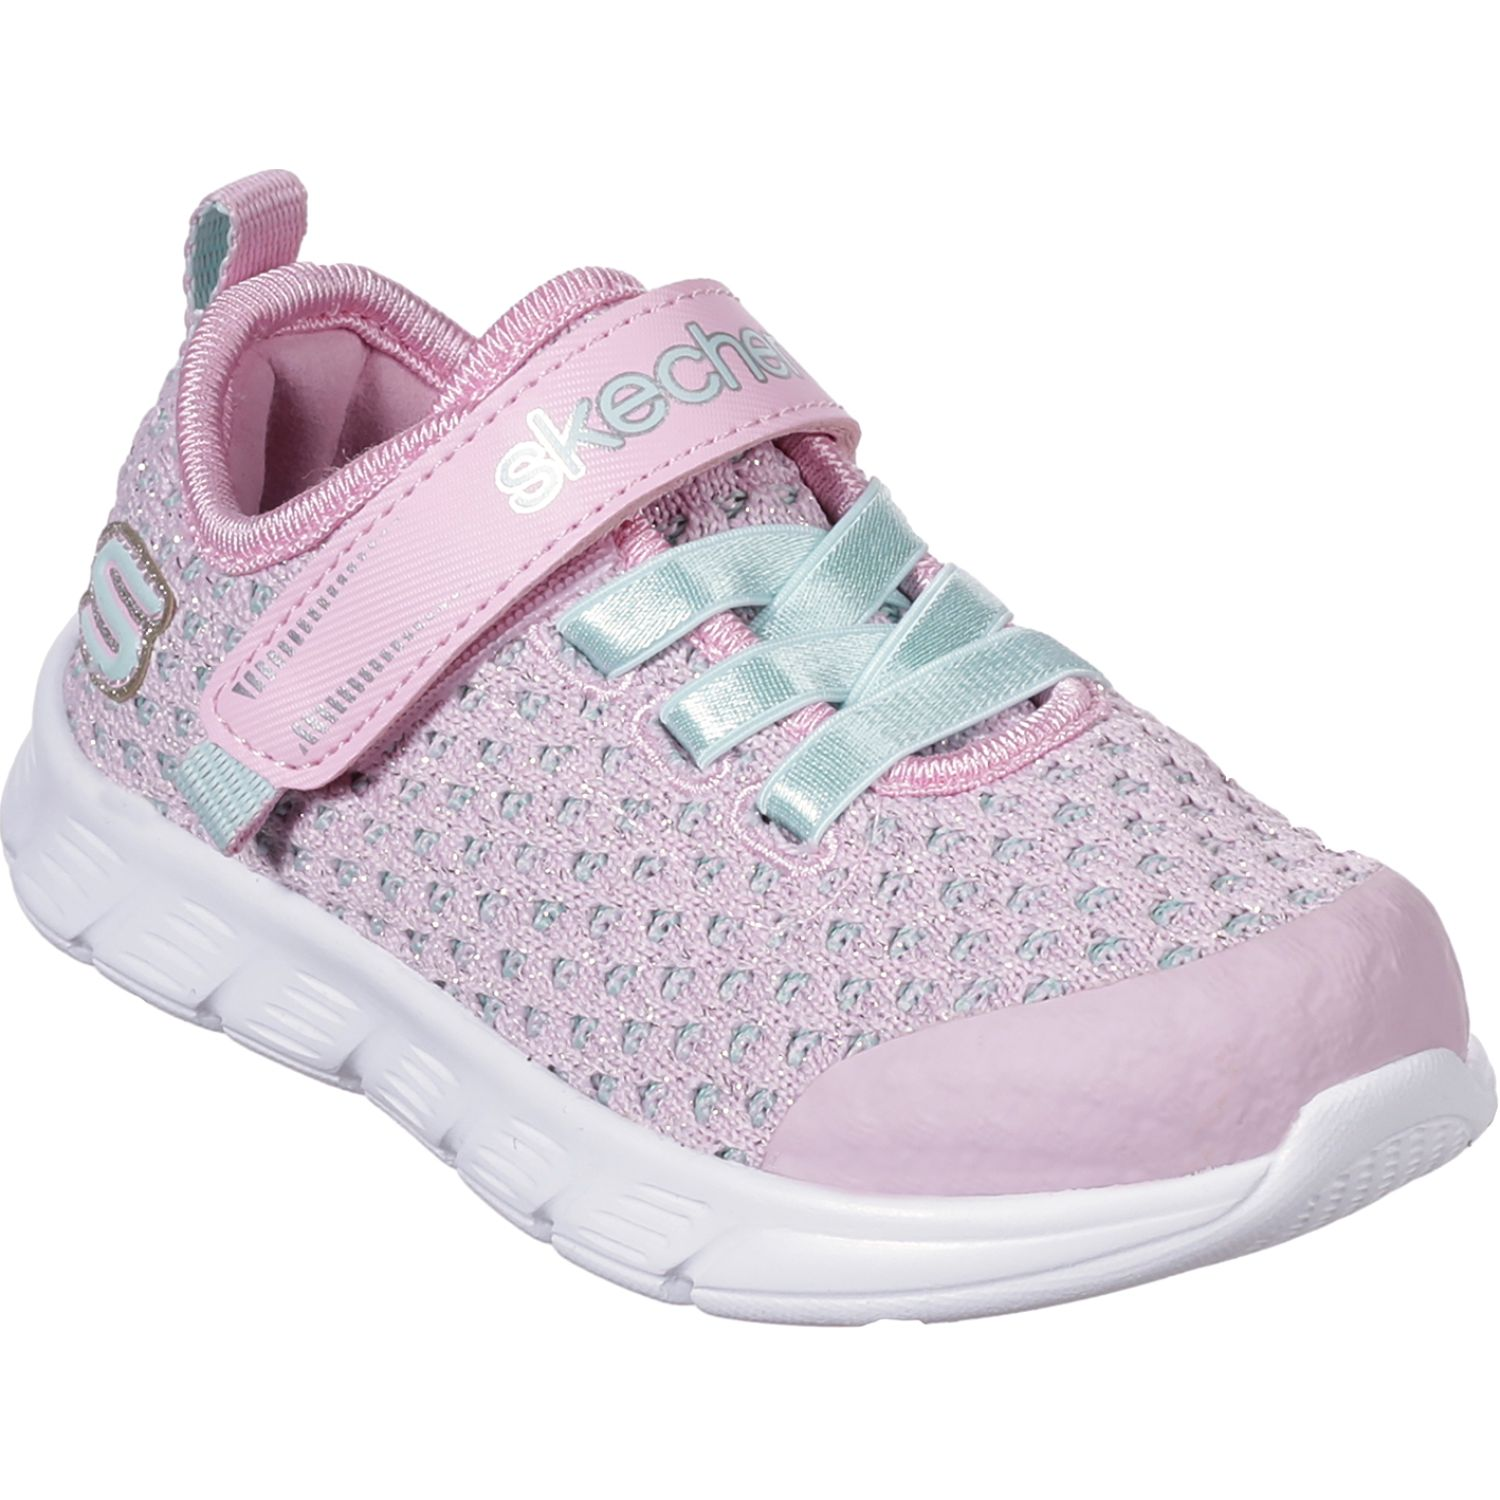 Skechers comfy flex - sparkle dash Rosado Walking